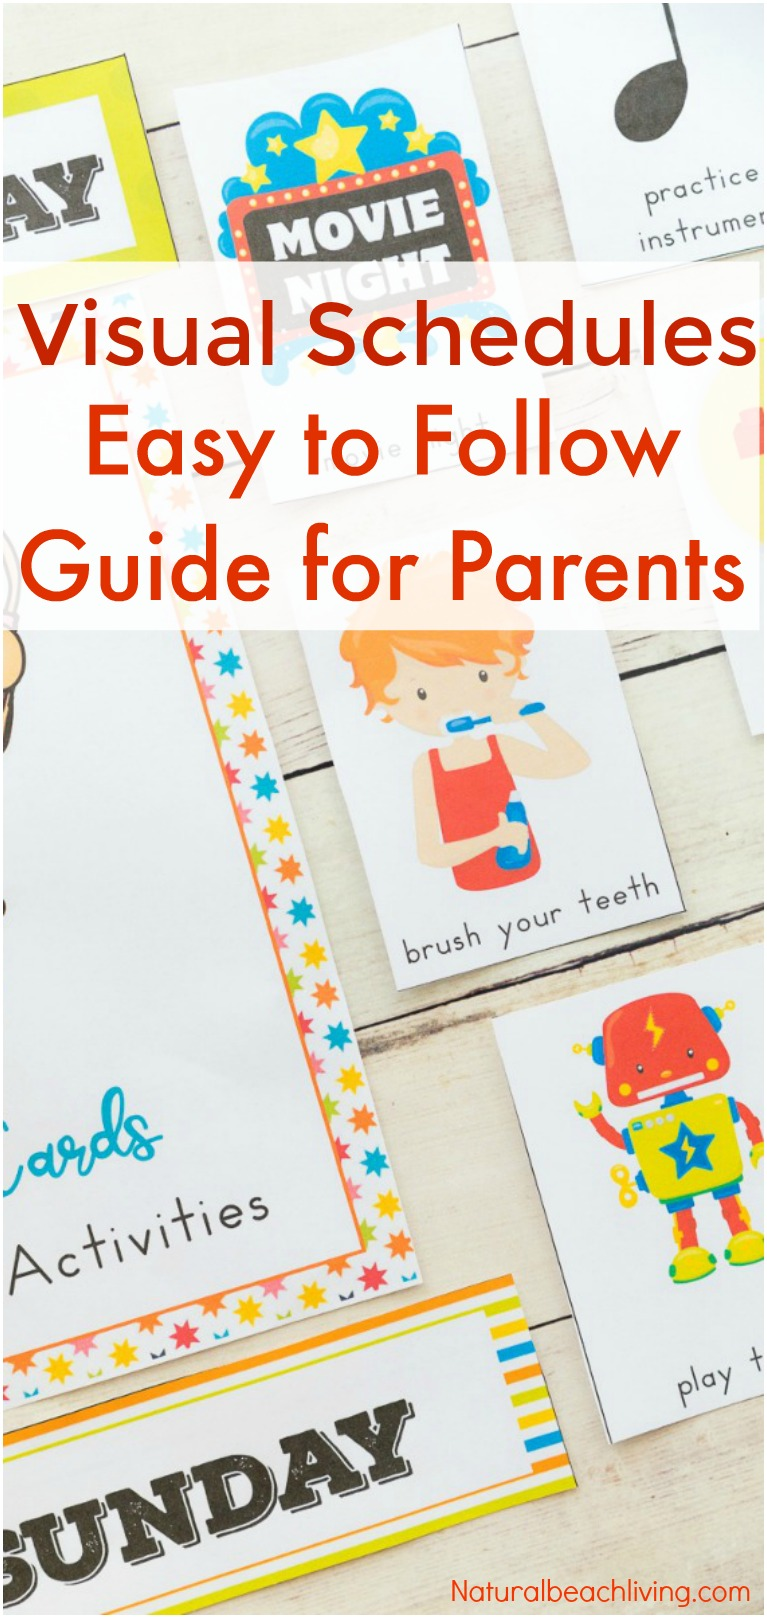 Visual Schedules – The Easy to Follow Guide for Parents